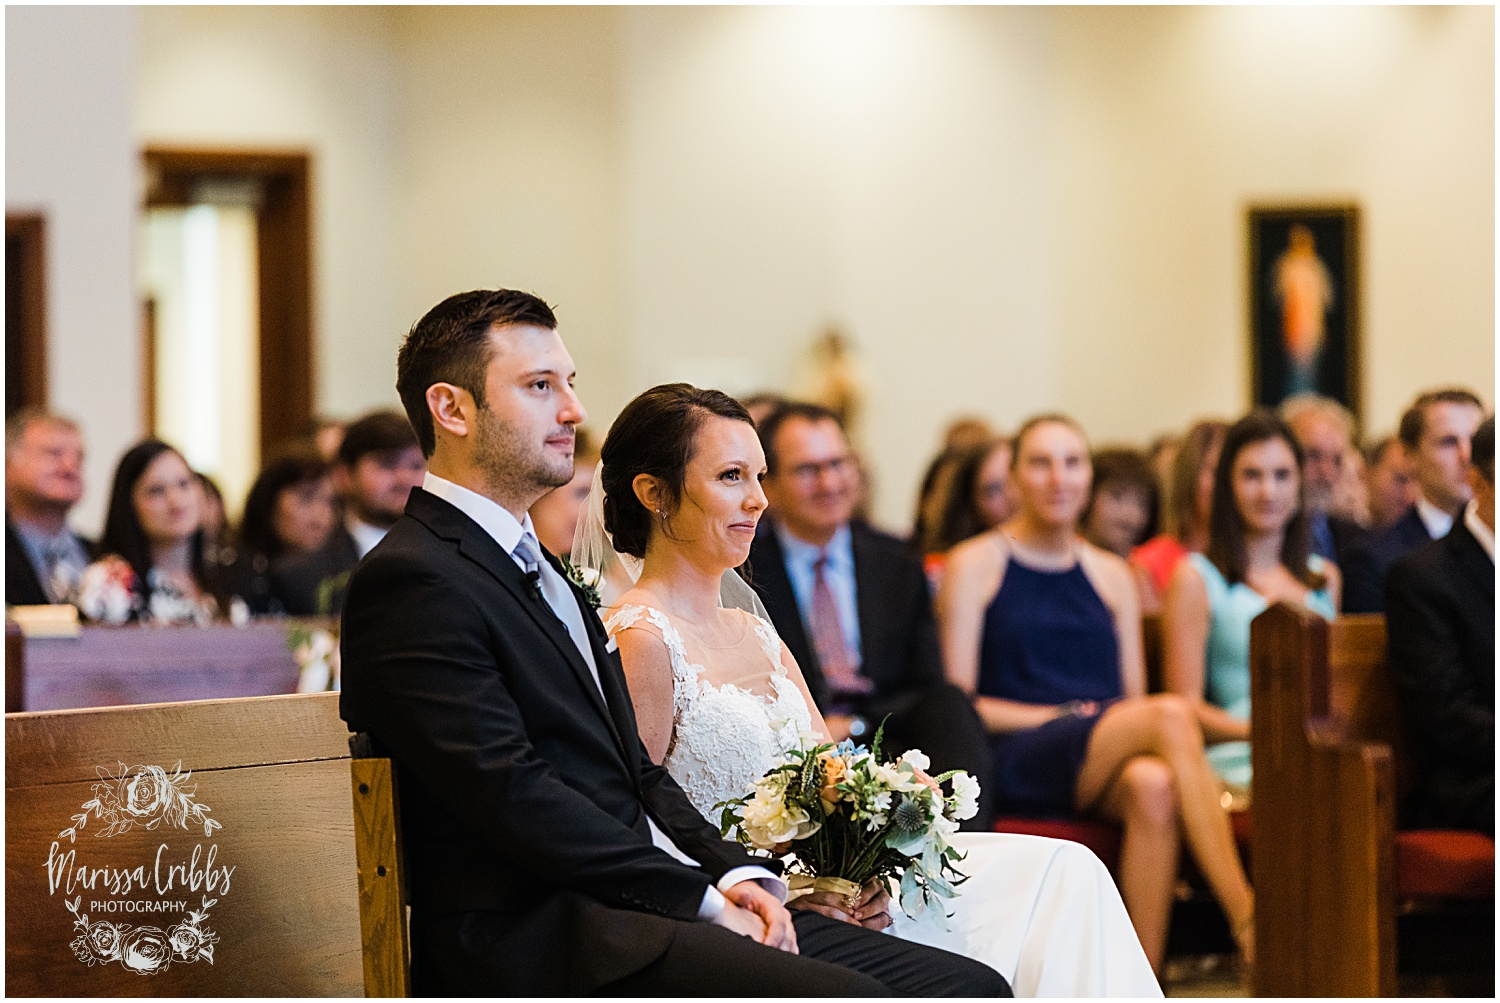 KELLY & MITCH MARRIED BLOG | MARISSA CRIBBS PHOTOGRAPHY | THE EVERLY EVENT SPACE_8838.jpg